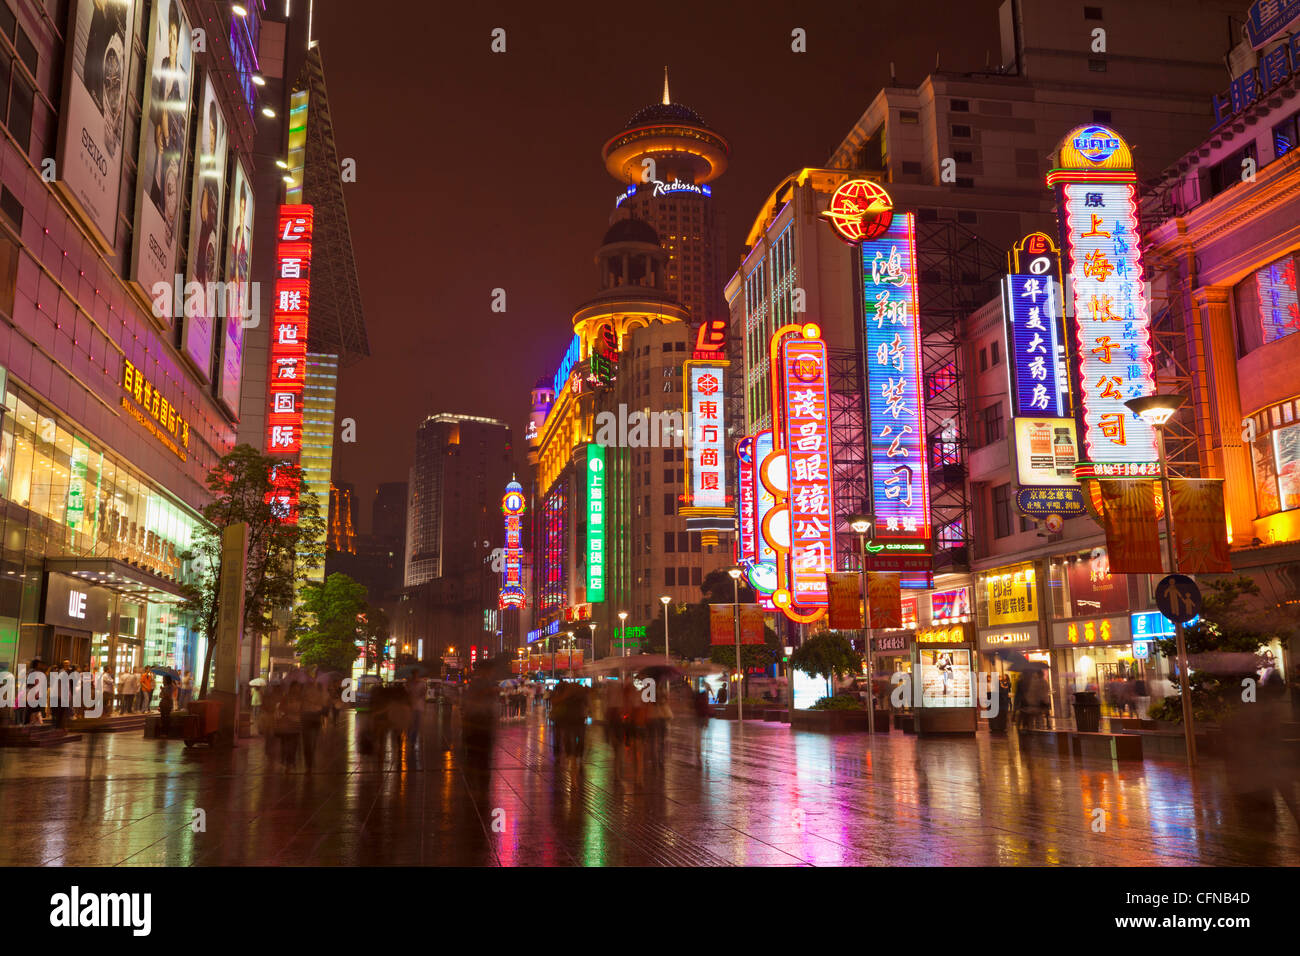 Neon signs and shoppers, Nanjing Road, Shanghai, China, Asia - Stock Image